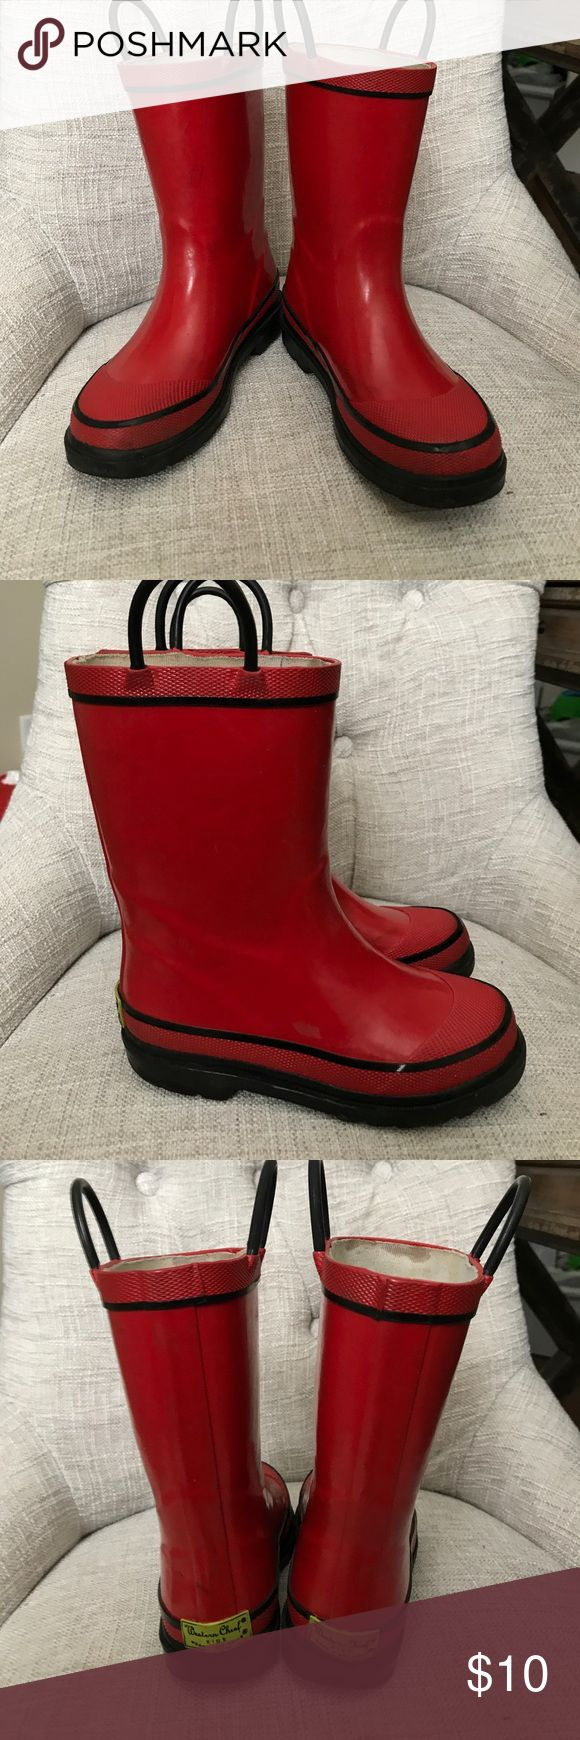 Boys Red Rain Boots Size 11 Western Chief Red Rain Boots. These are size 11. There is some minor wear and the inside lining is a bit discolored. Overall in great condition. See pictures for wear. Western Chief Shoes Rain & Snow Boots